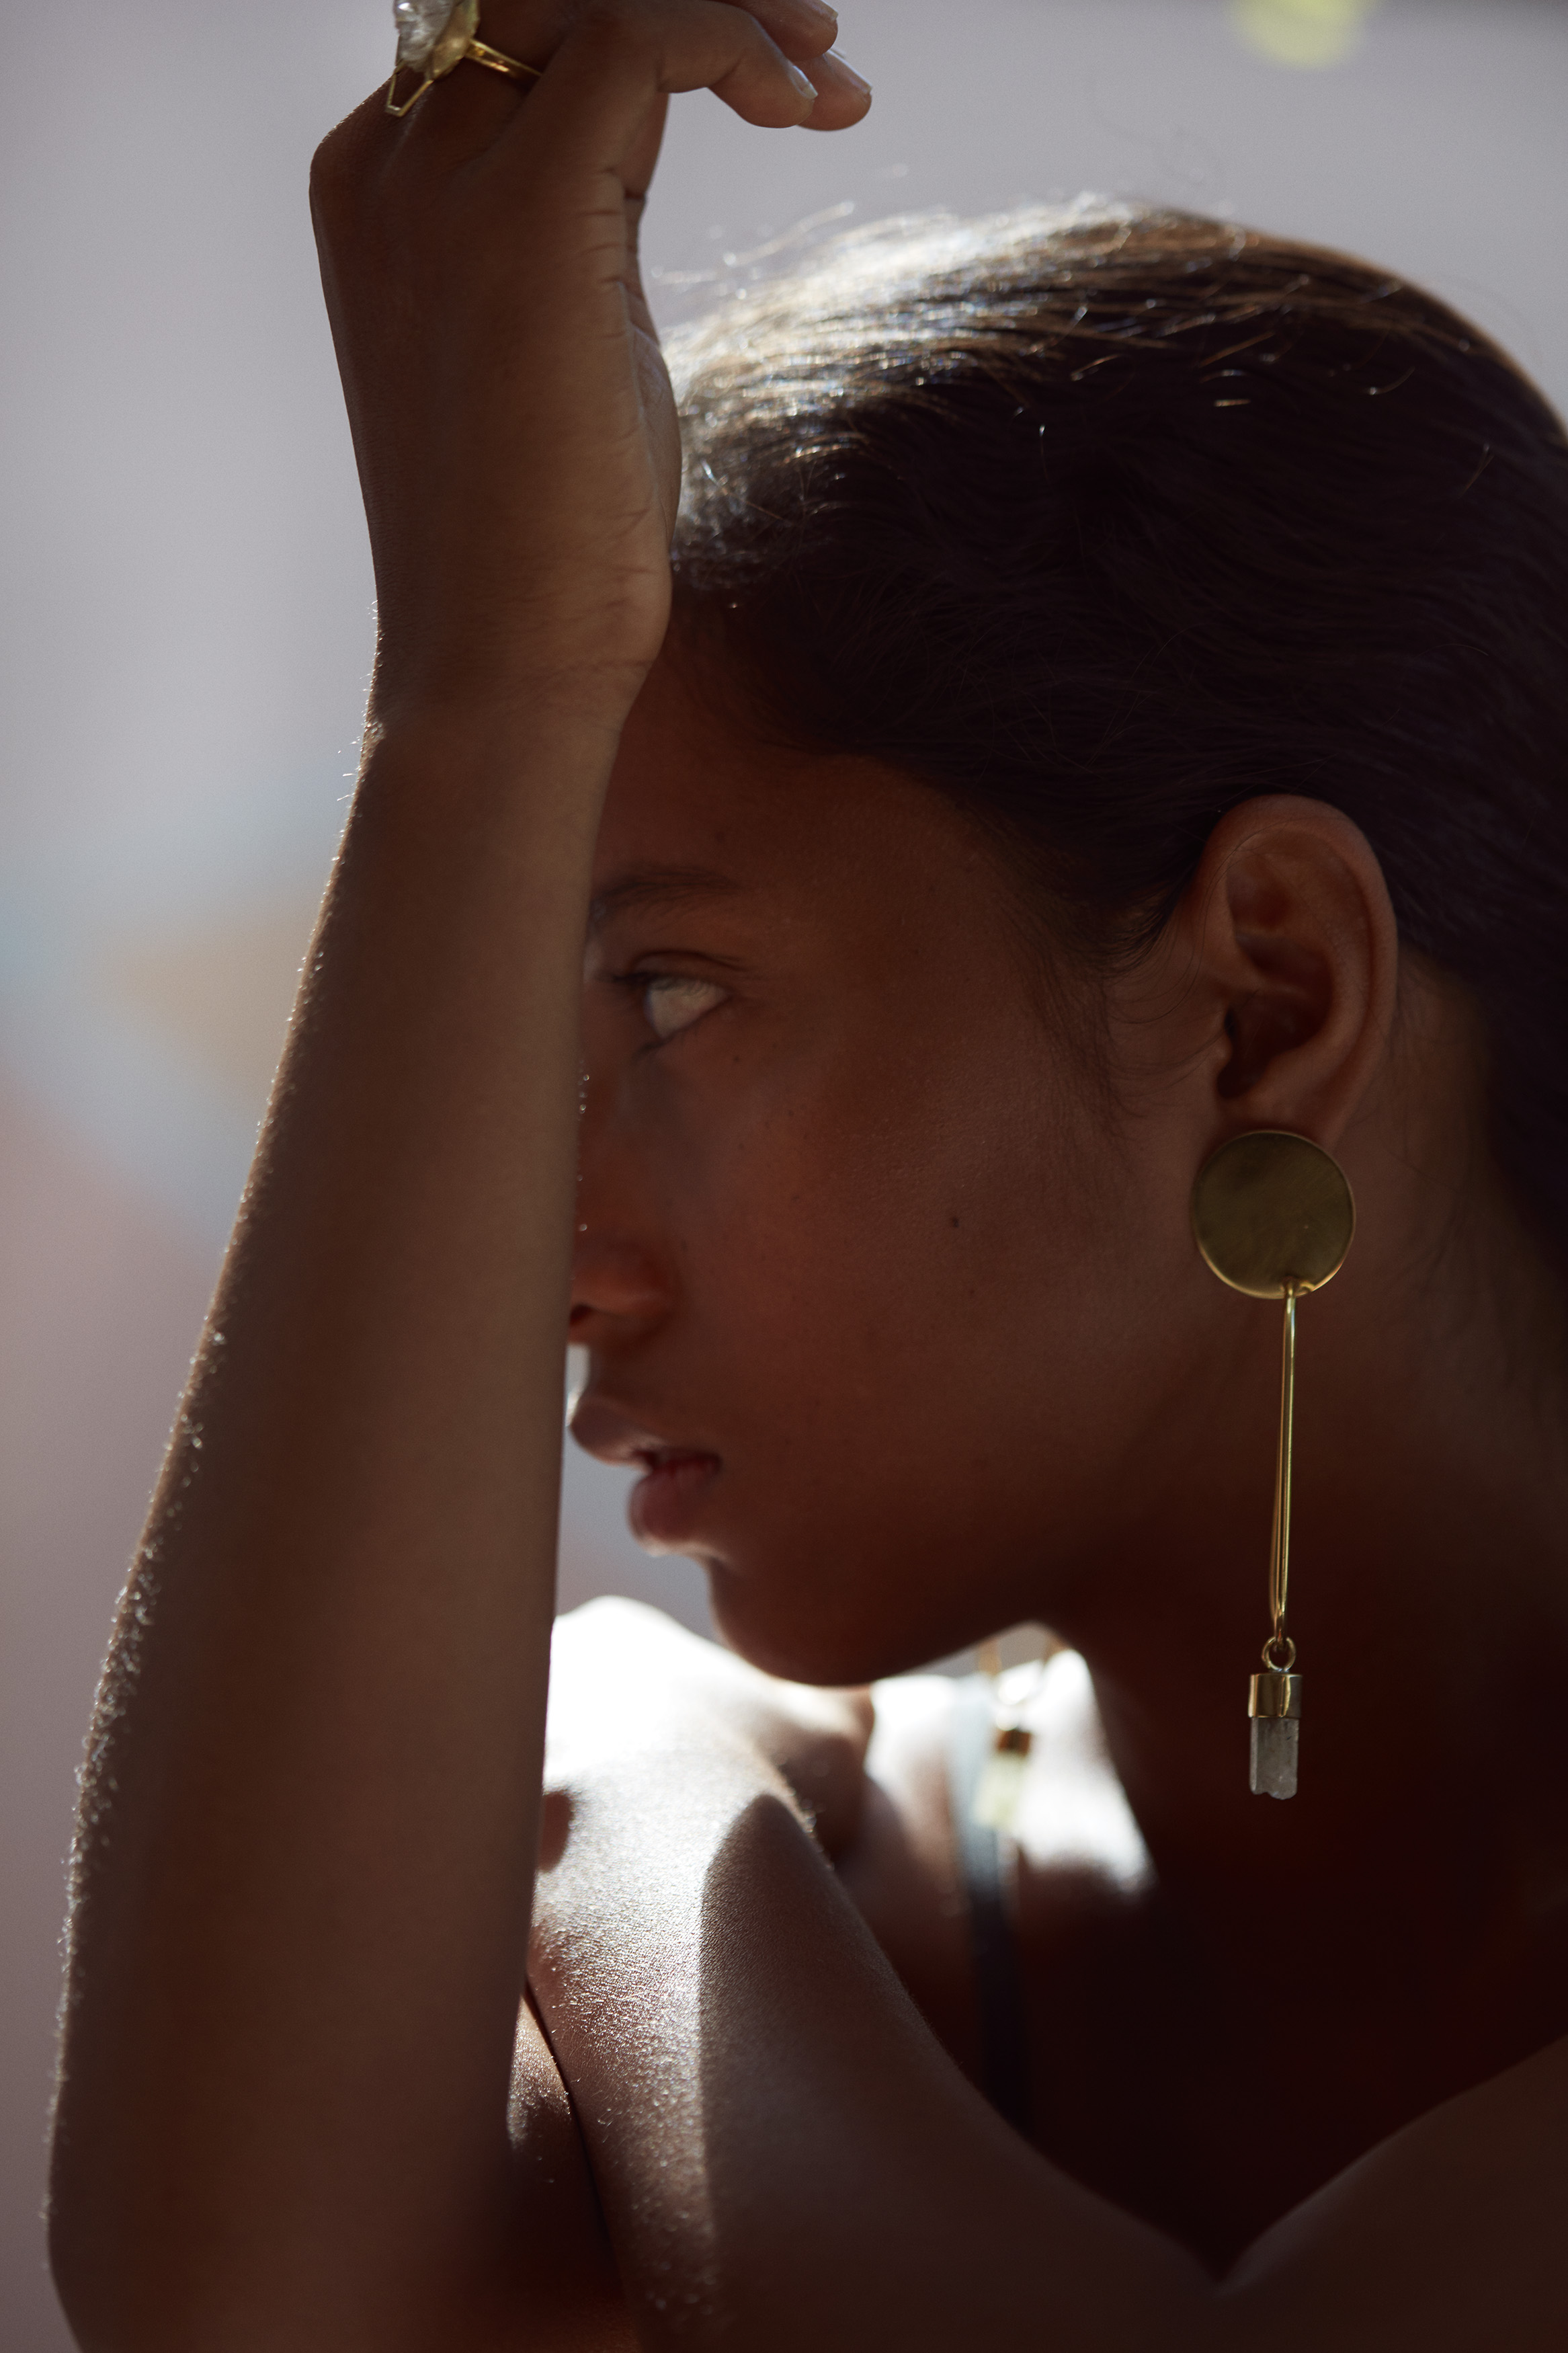 'Grandfather's Clock' Earring. Photographed by Karina Twiss and modeled by Agatha.